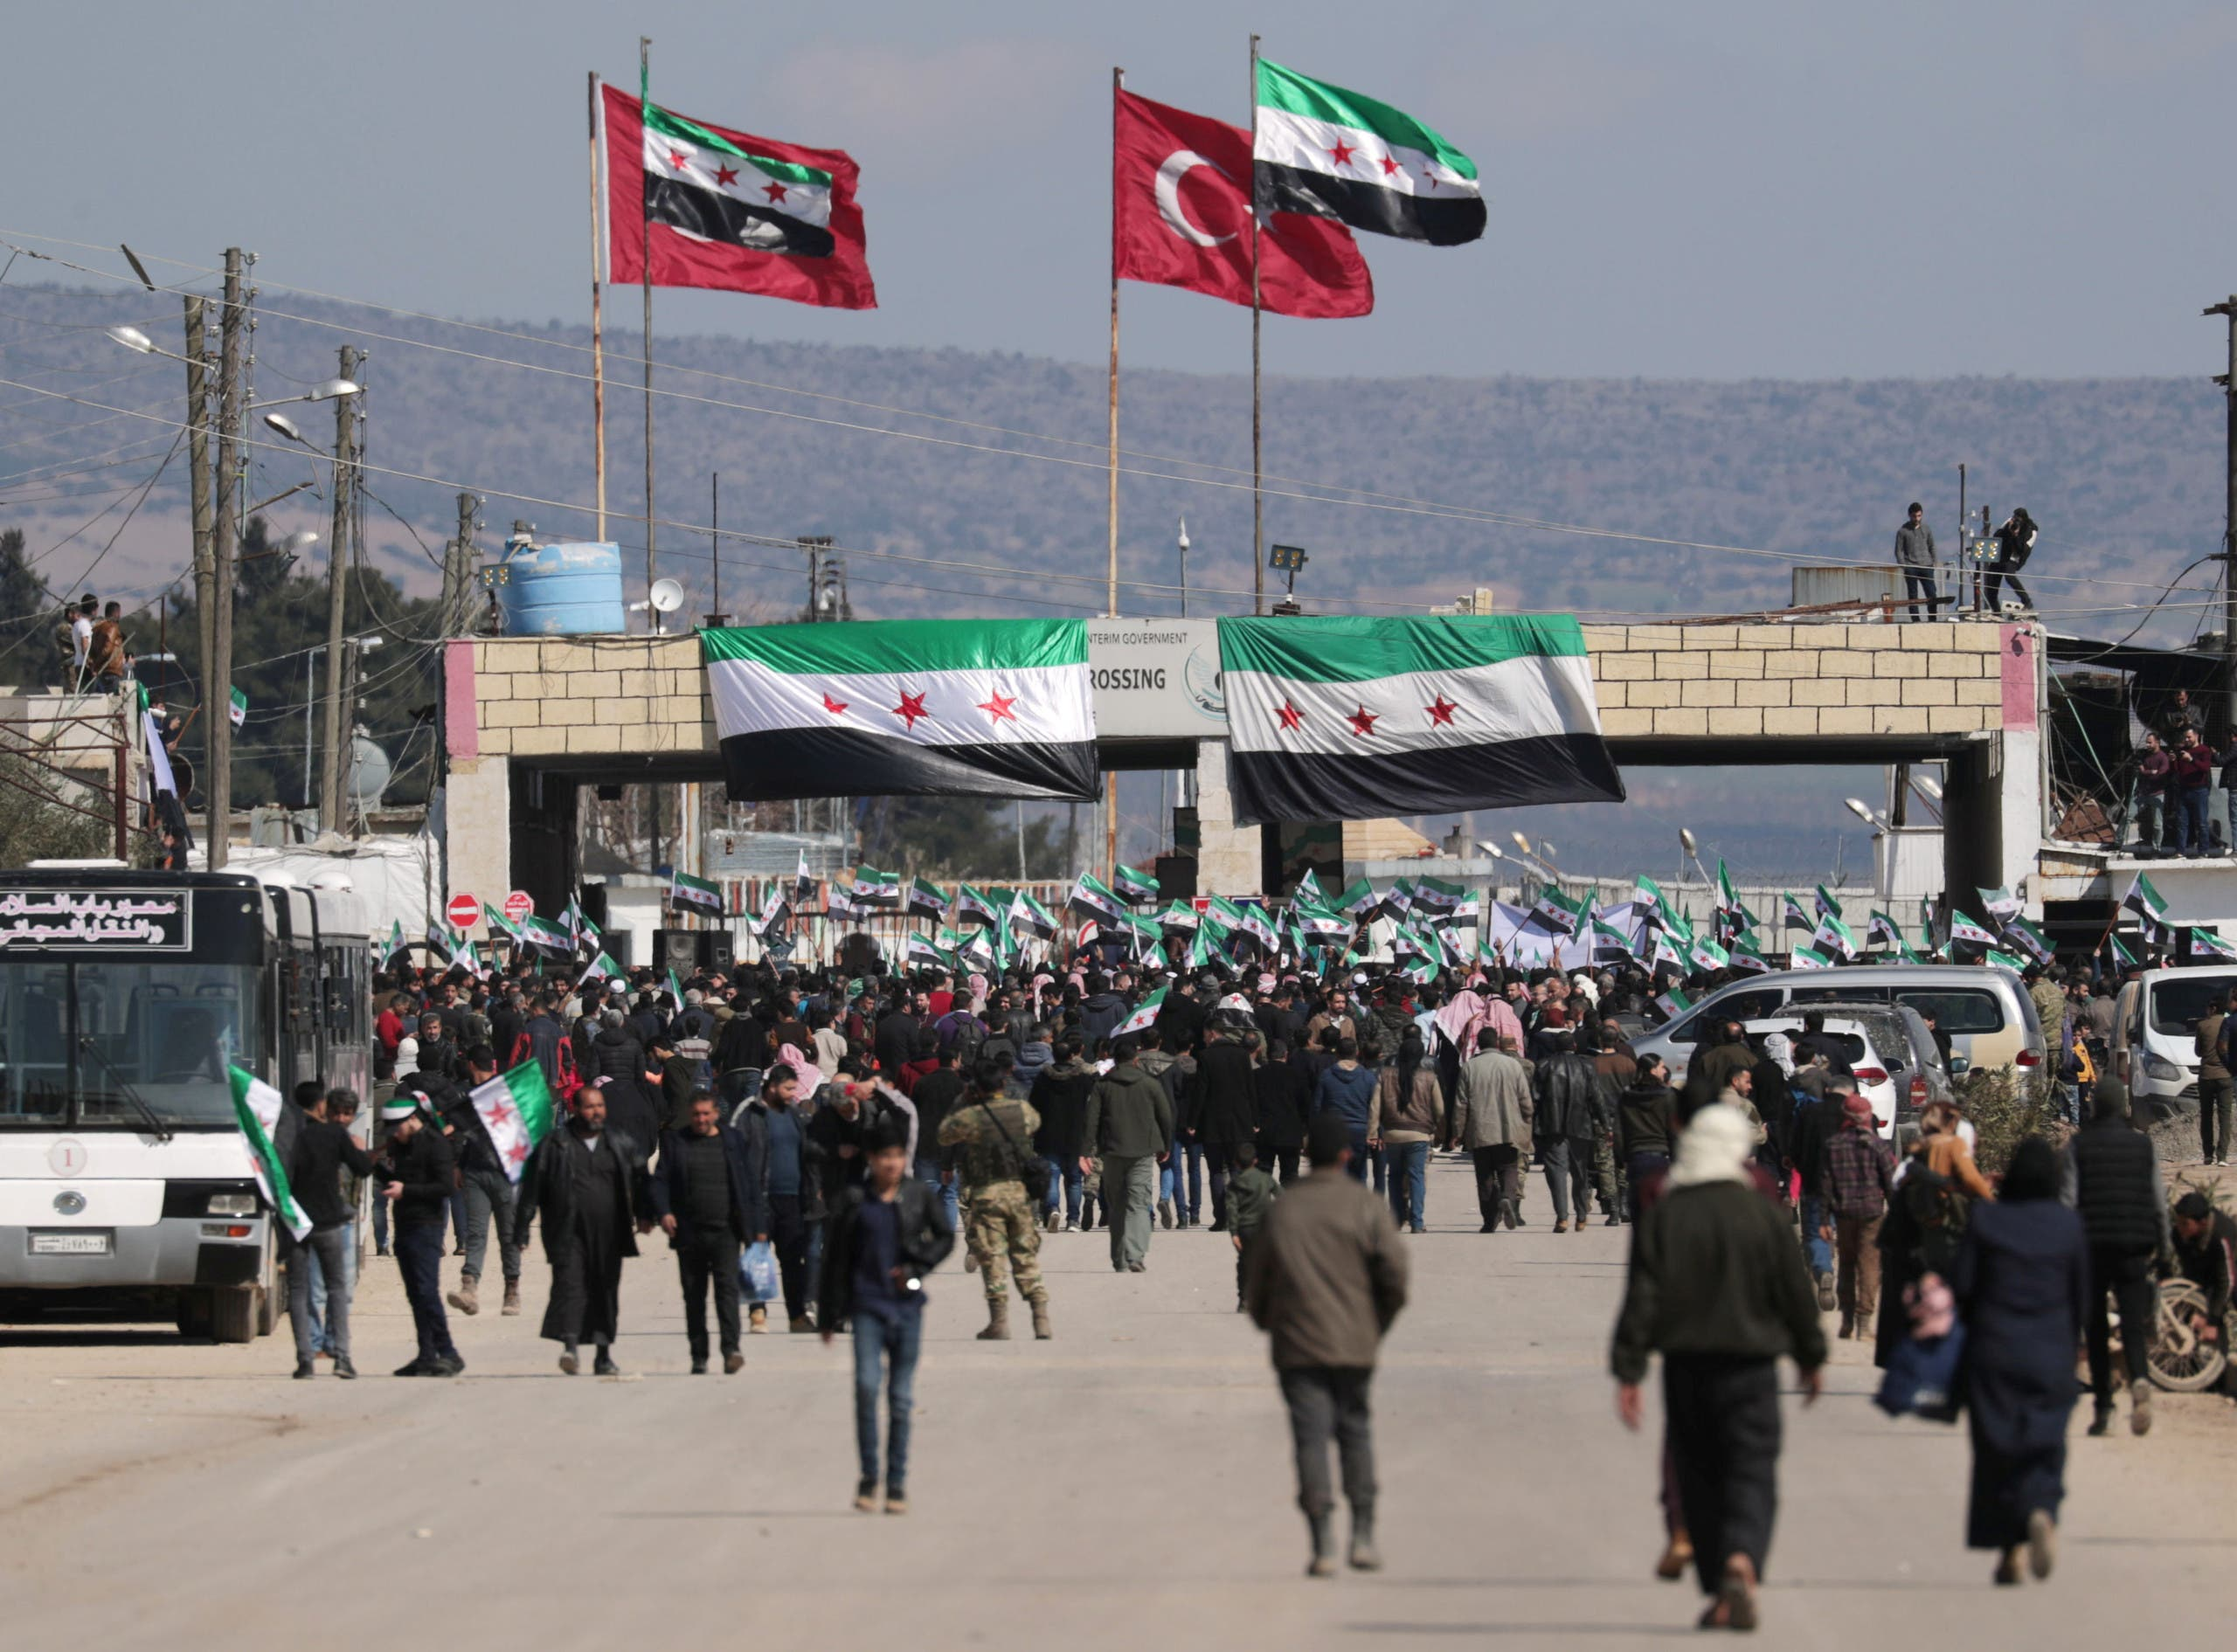 Internally displaced Syrians hold Syrian opposition flags during a protest in support of the Turkish army and Turkey backed Syrian rebels at the Bab el-Salam border crossing between the Syrian town of Azaz and the Turkish town of Kilis, in Syria, February 25, 2020. (Reuters)